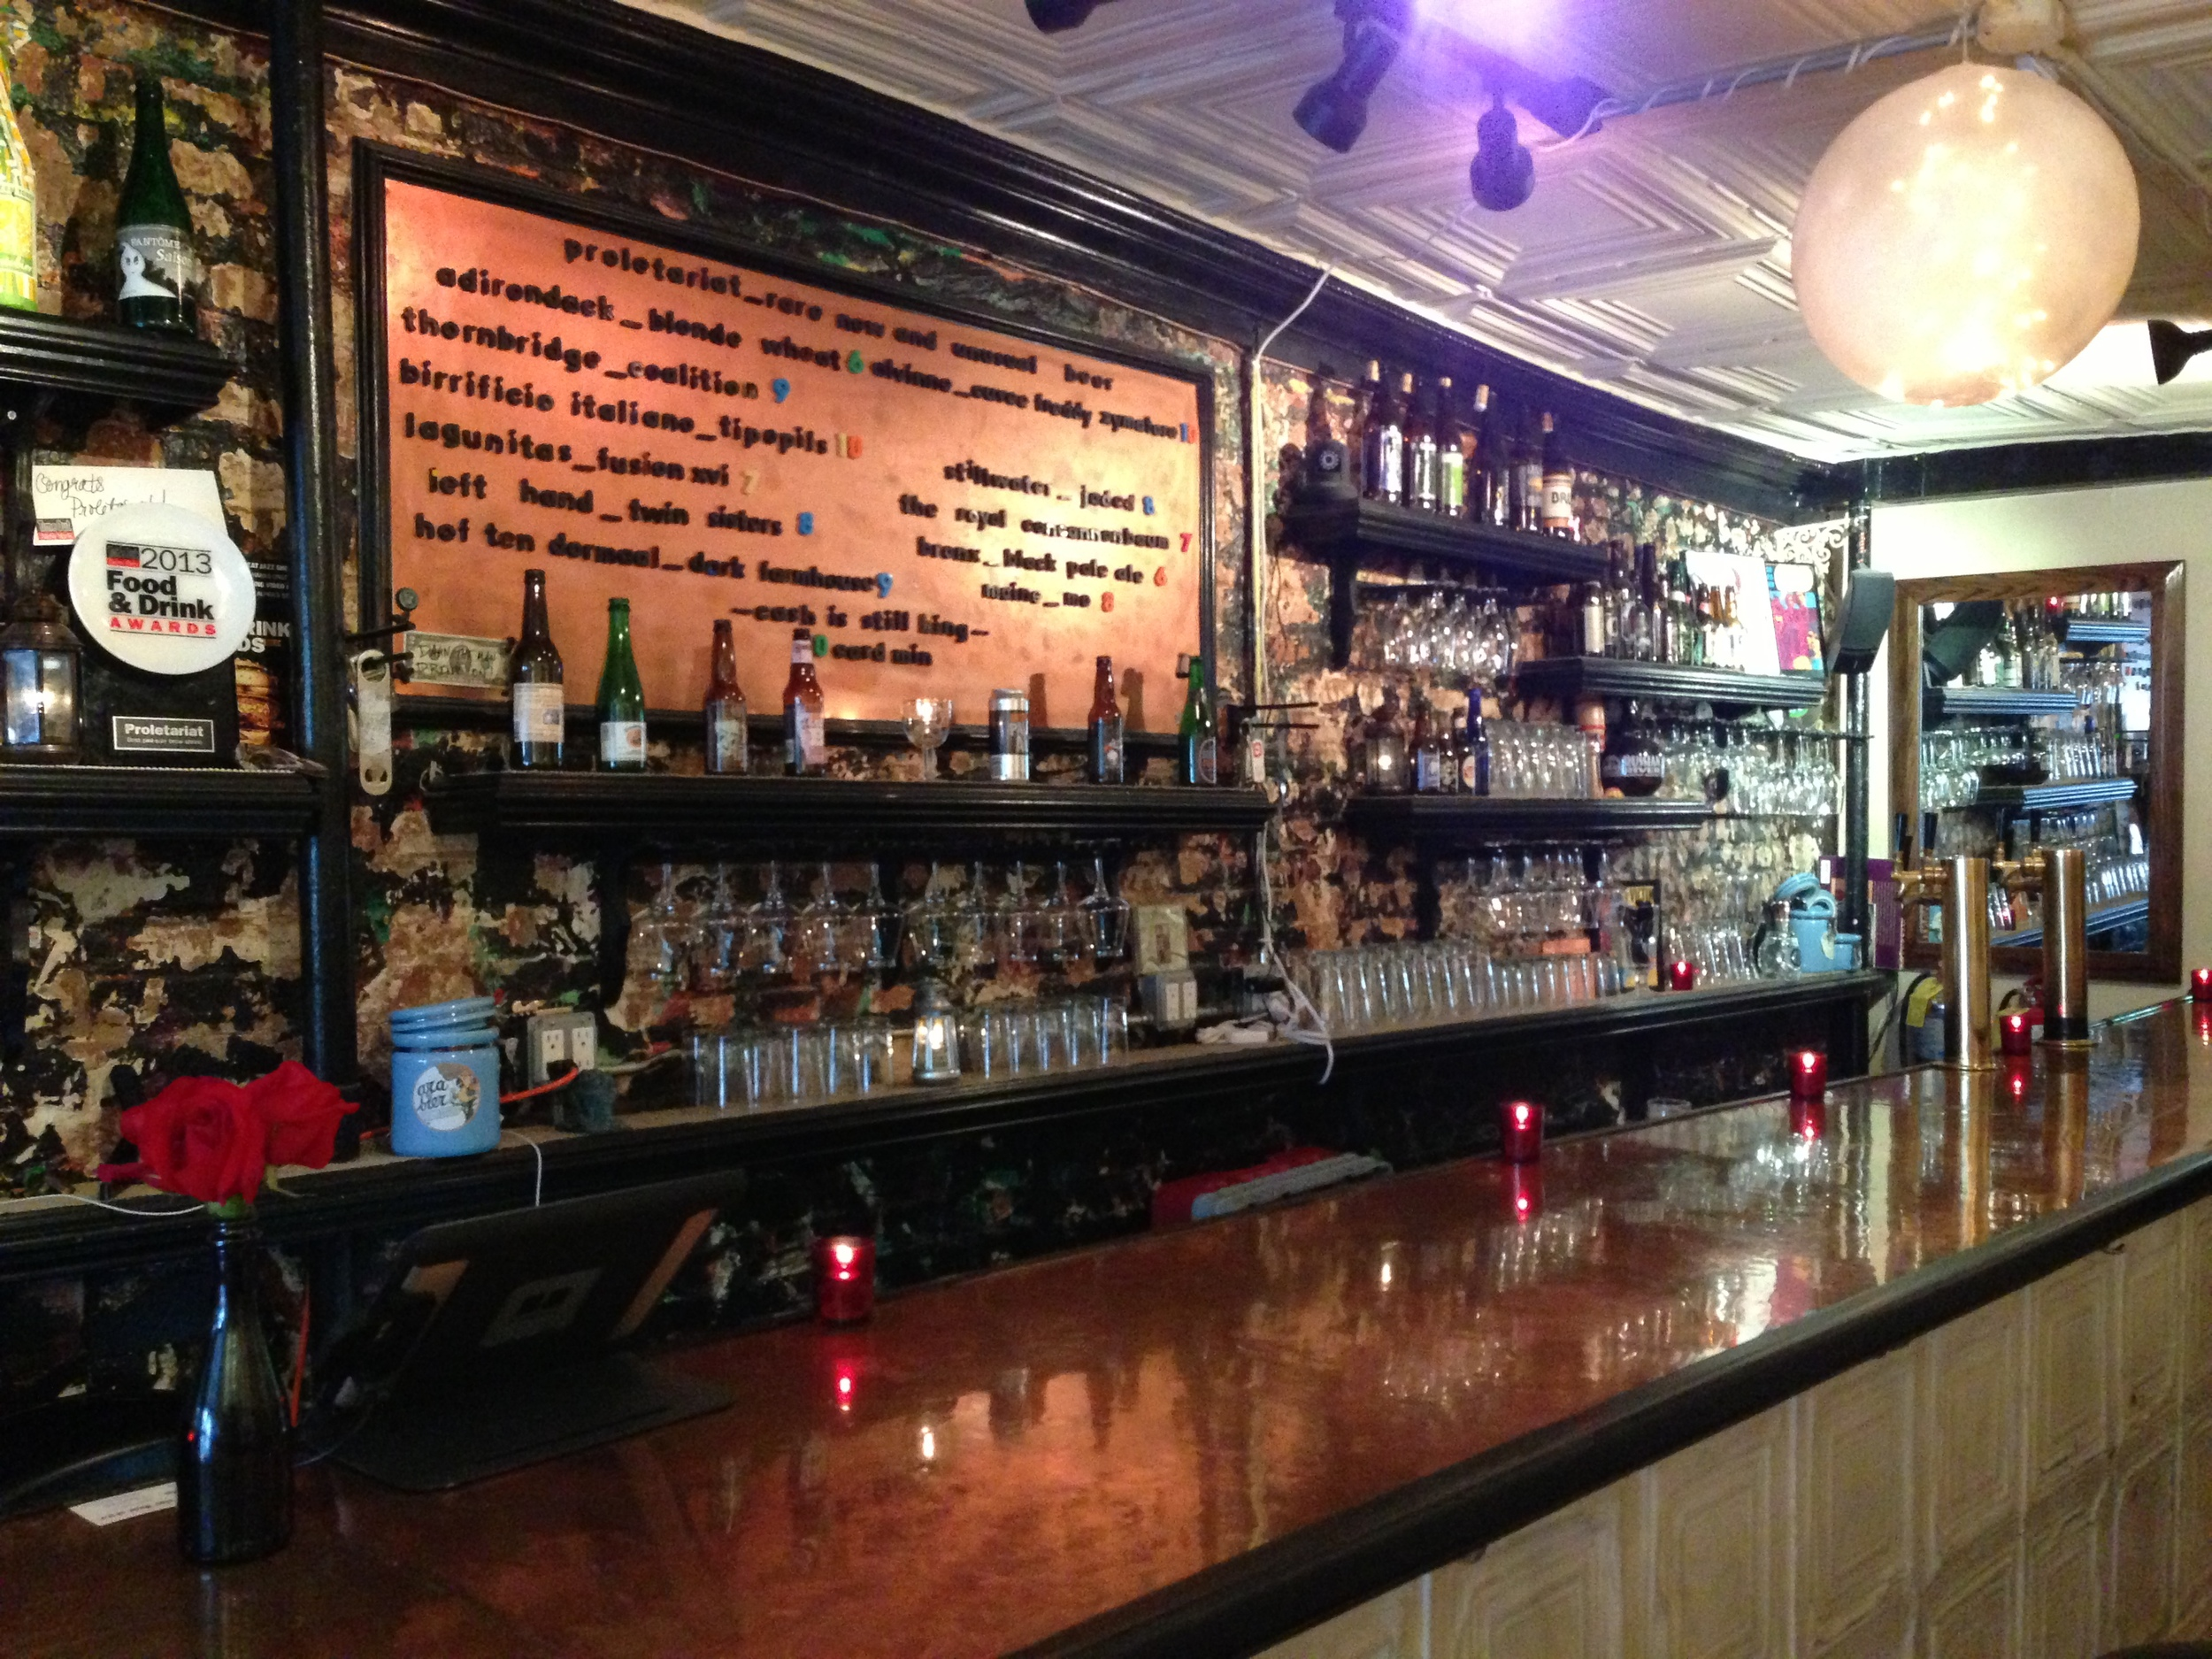 The constantly changing draught beer selection at Proletariat